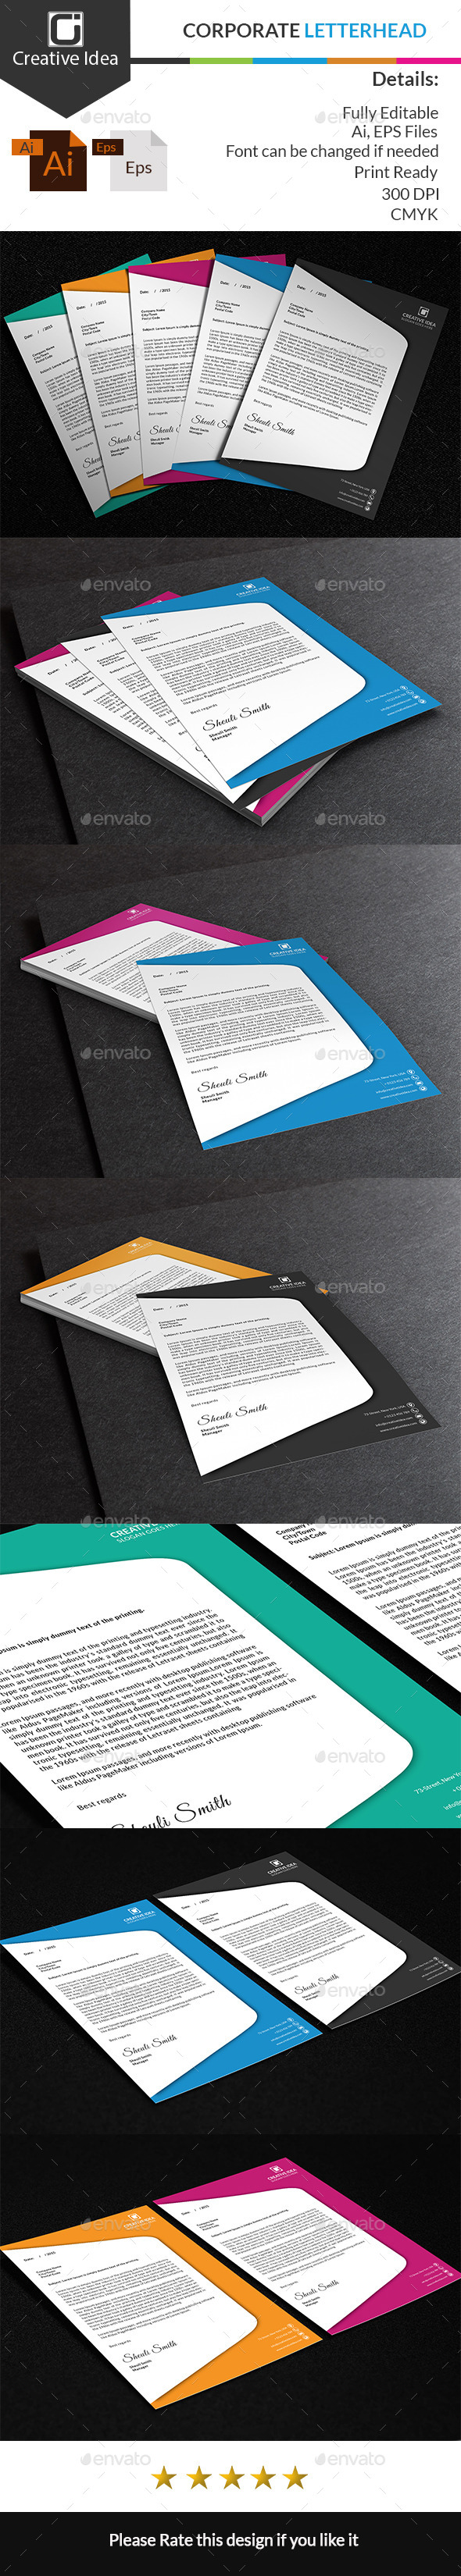 GraphicRiver Corporate Letterhead 10395426